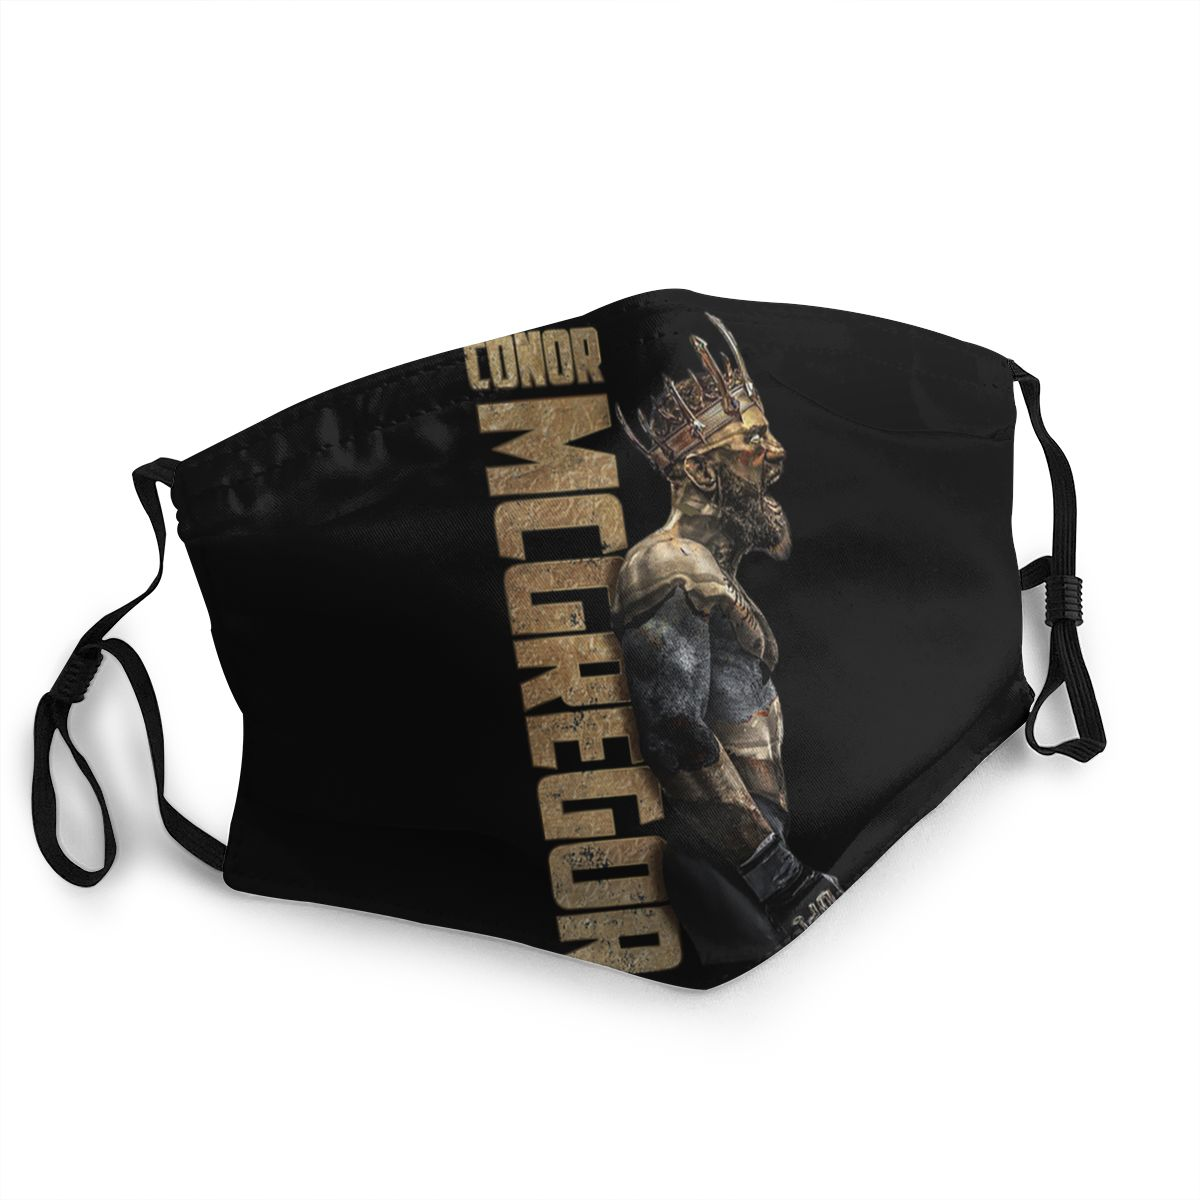 The King Of Ufc Conor Mcgregor Unisex Non-Disposable Face Mask Anti Bacterial Dustproof Protection Cover Respirator